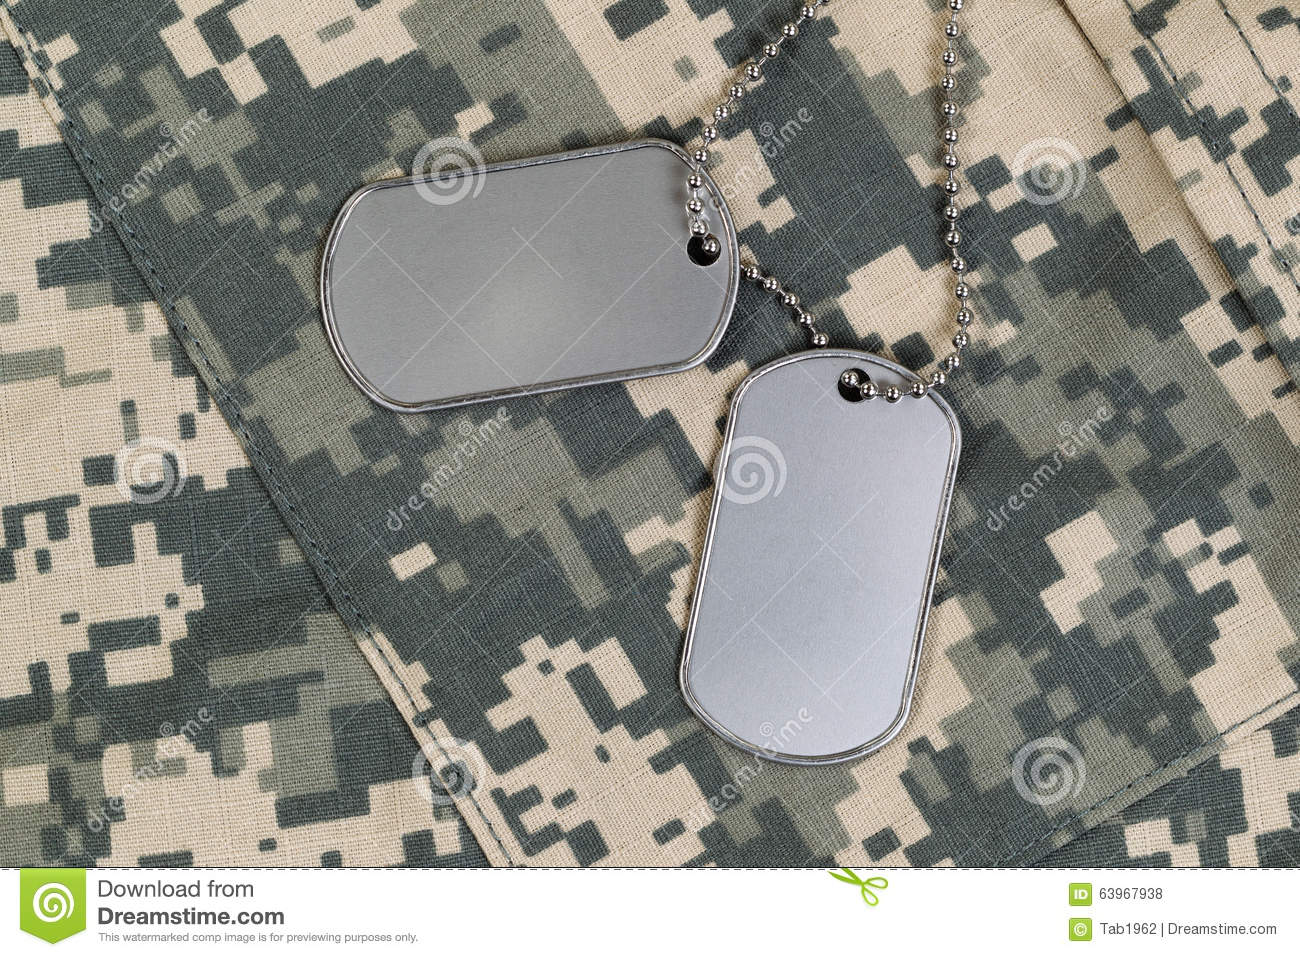 3088036cd352 Military identification tags, neck chain, and combat uniform top. Military  service concept.